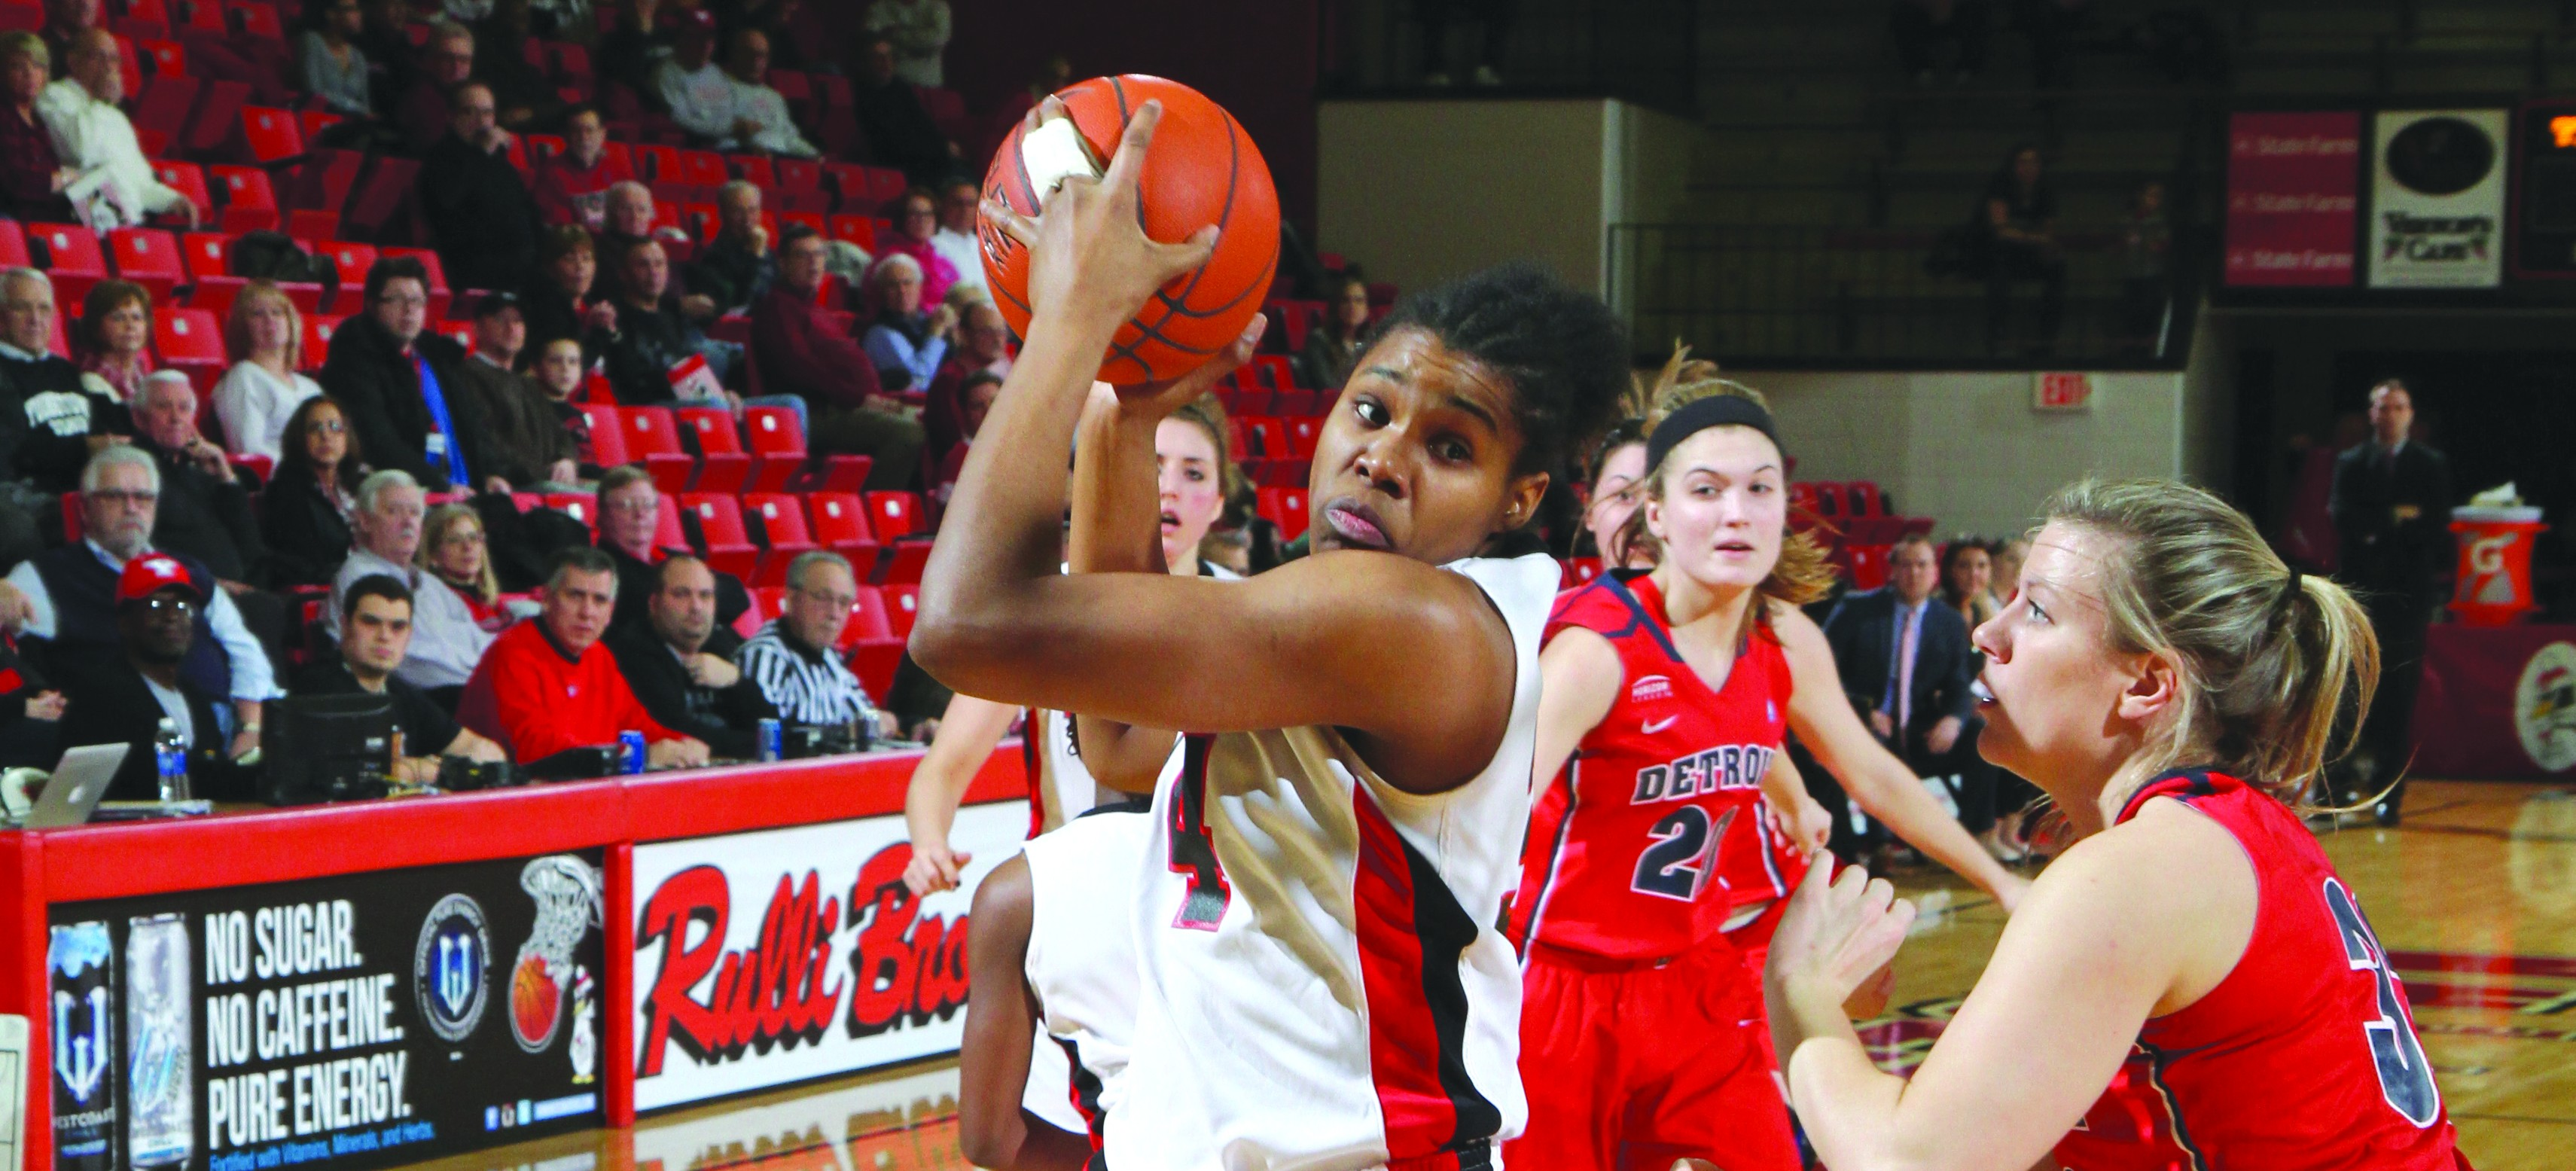 The Youngstown State University women's basketball team defeated the Cleveland State University Vikings 79-65 on Jan. 15. Senior forward Latisha Walker scored 21 points and four rebounds in the Penguins' previous matchup. Photo courtesy of Ron Stevens.